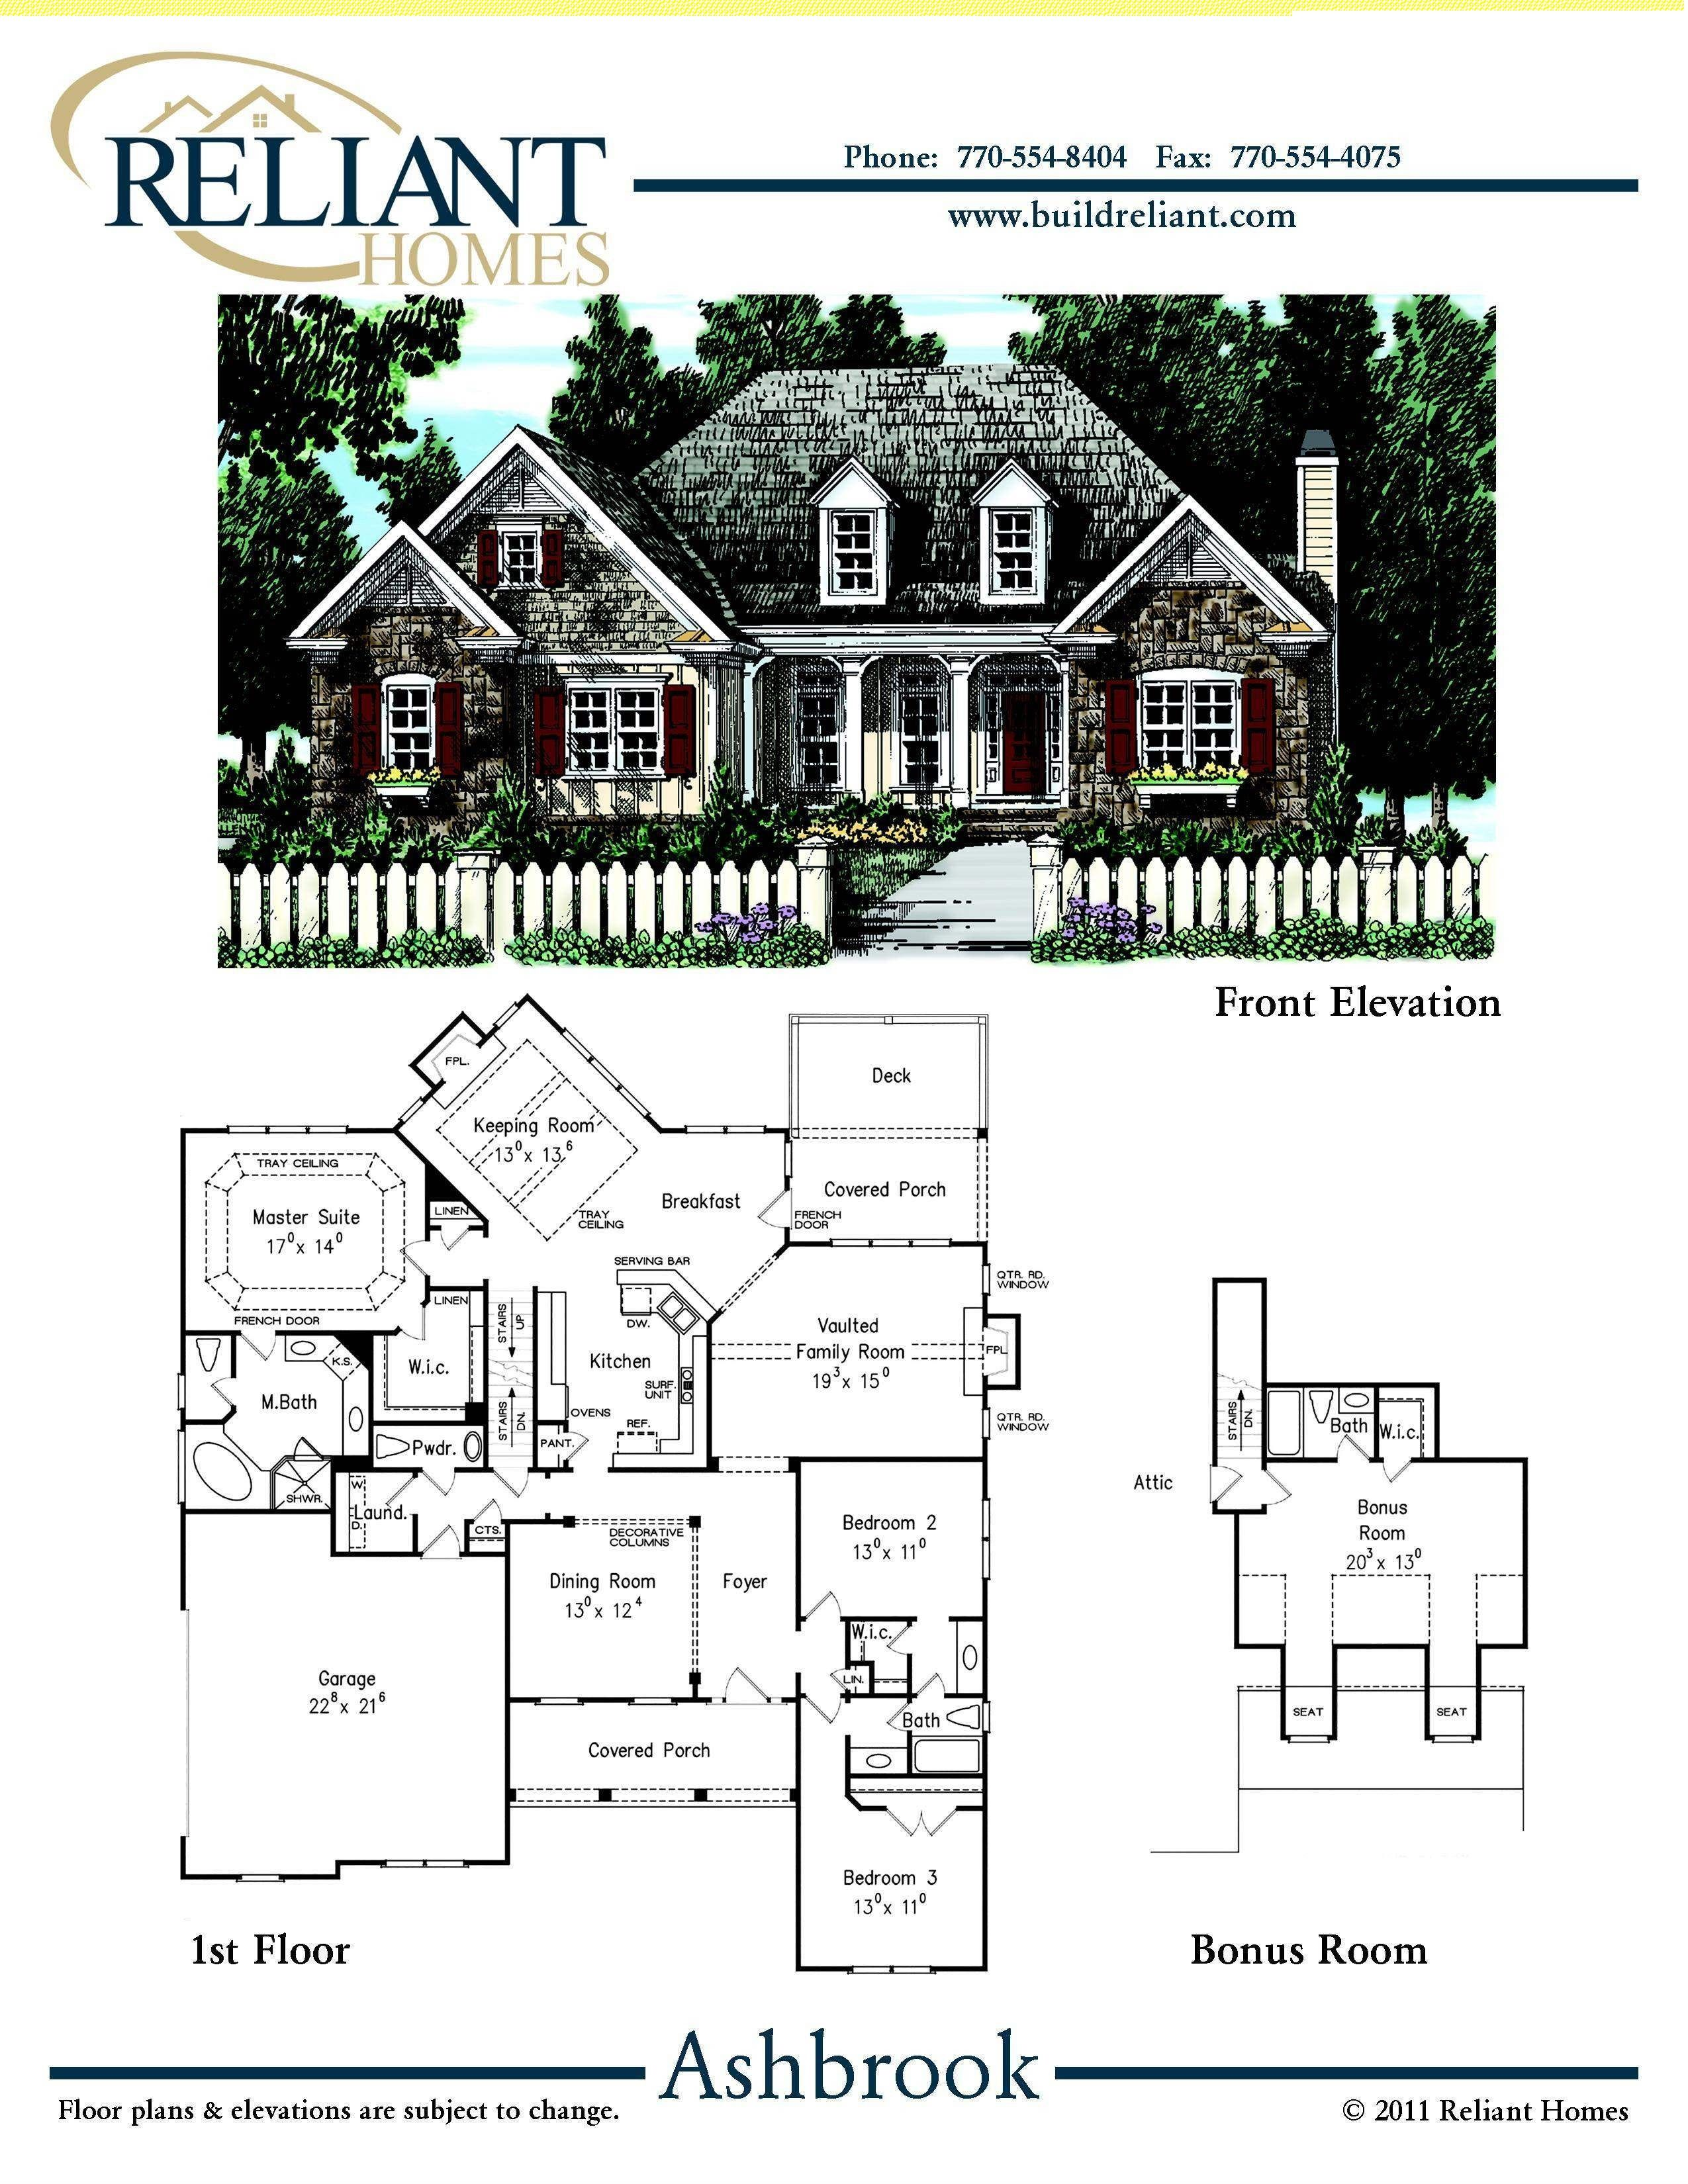 Reliant Homes | The Ashbrook Plan | Floor Plans | Homes | Homes For Sale | Part 80